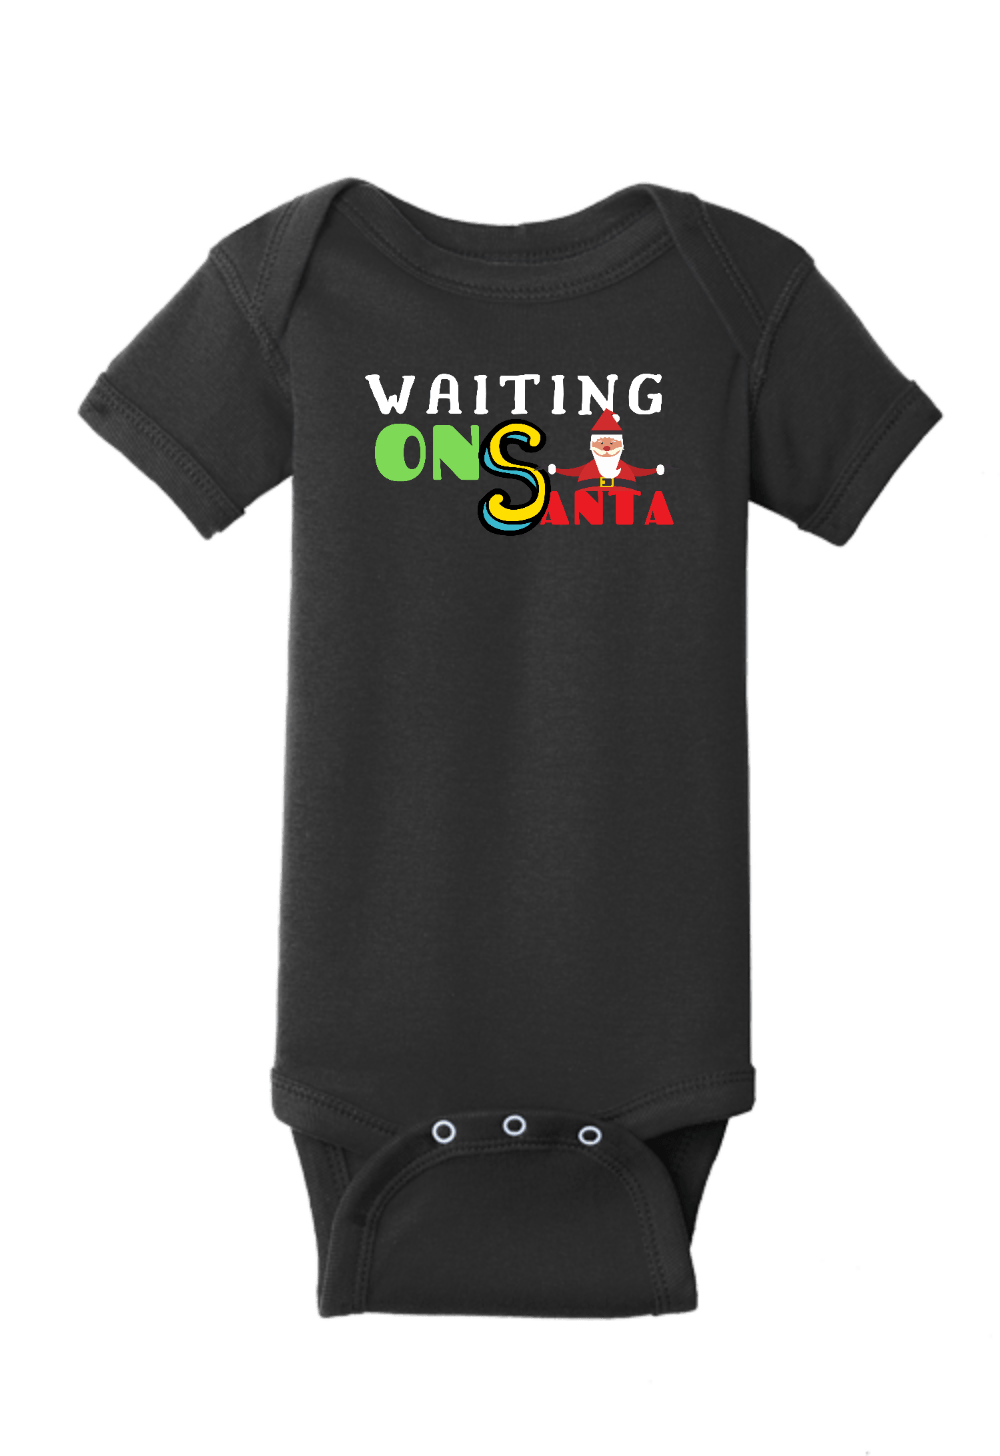 Waiting on Santa Christmas Onesie